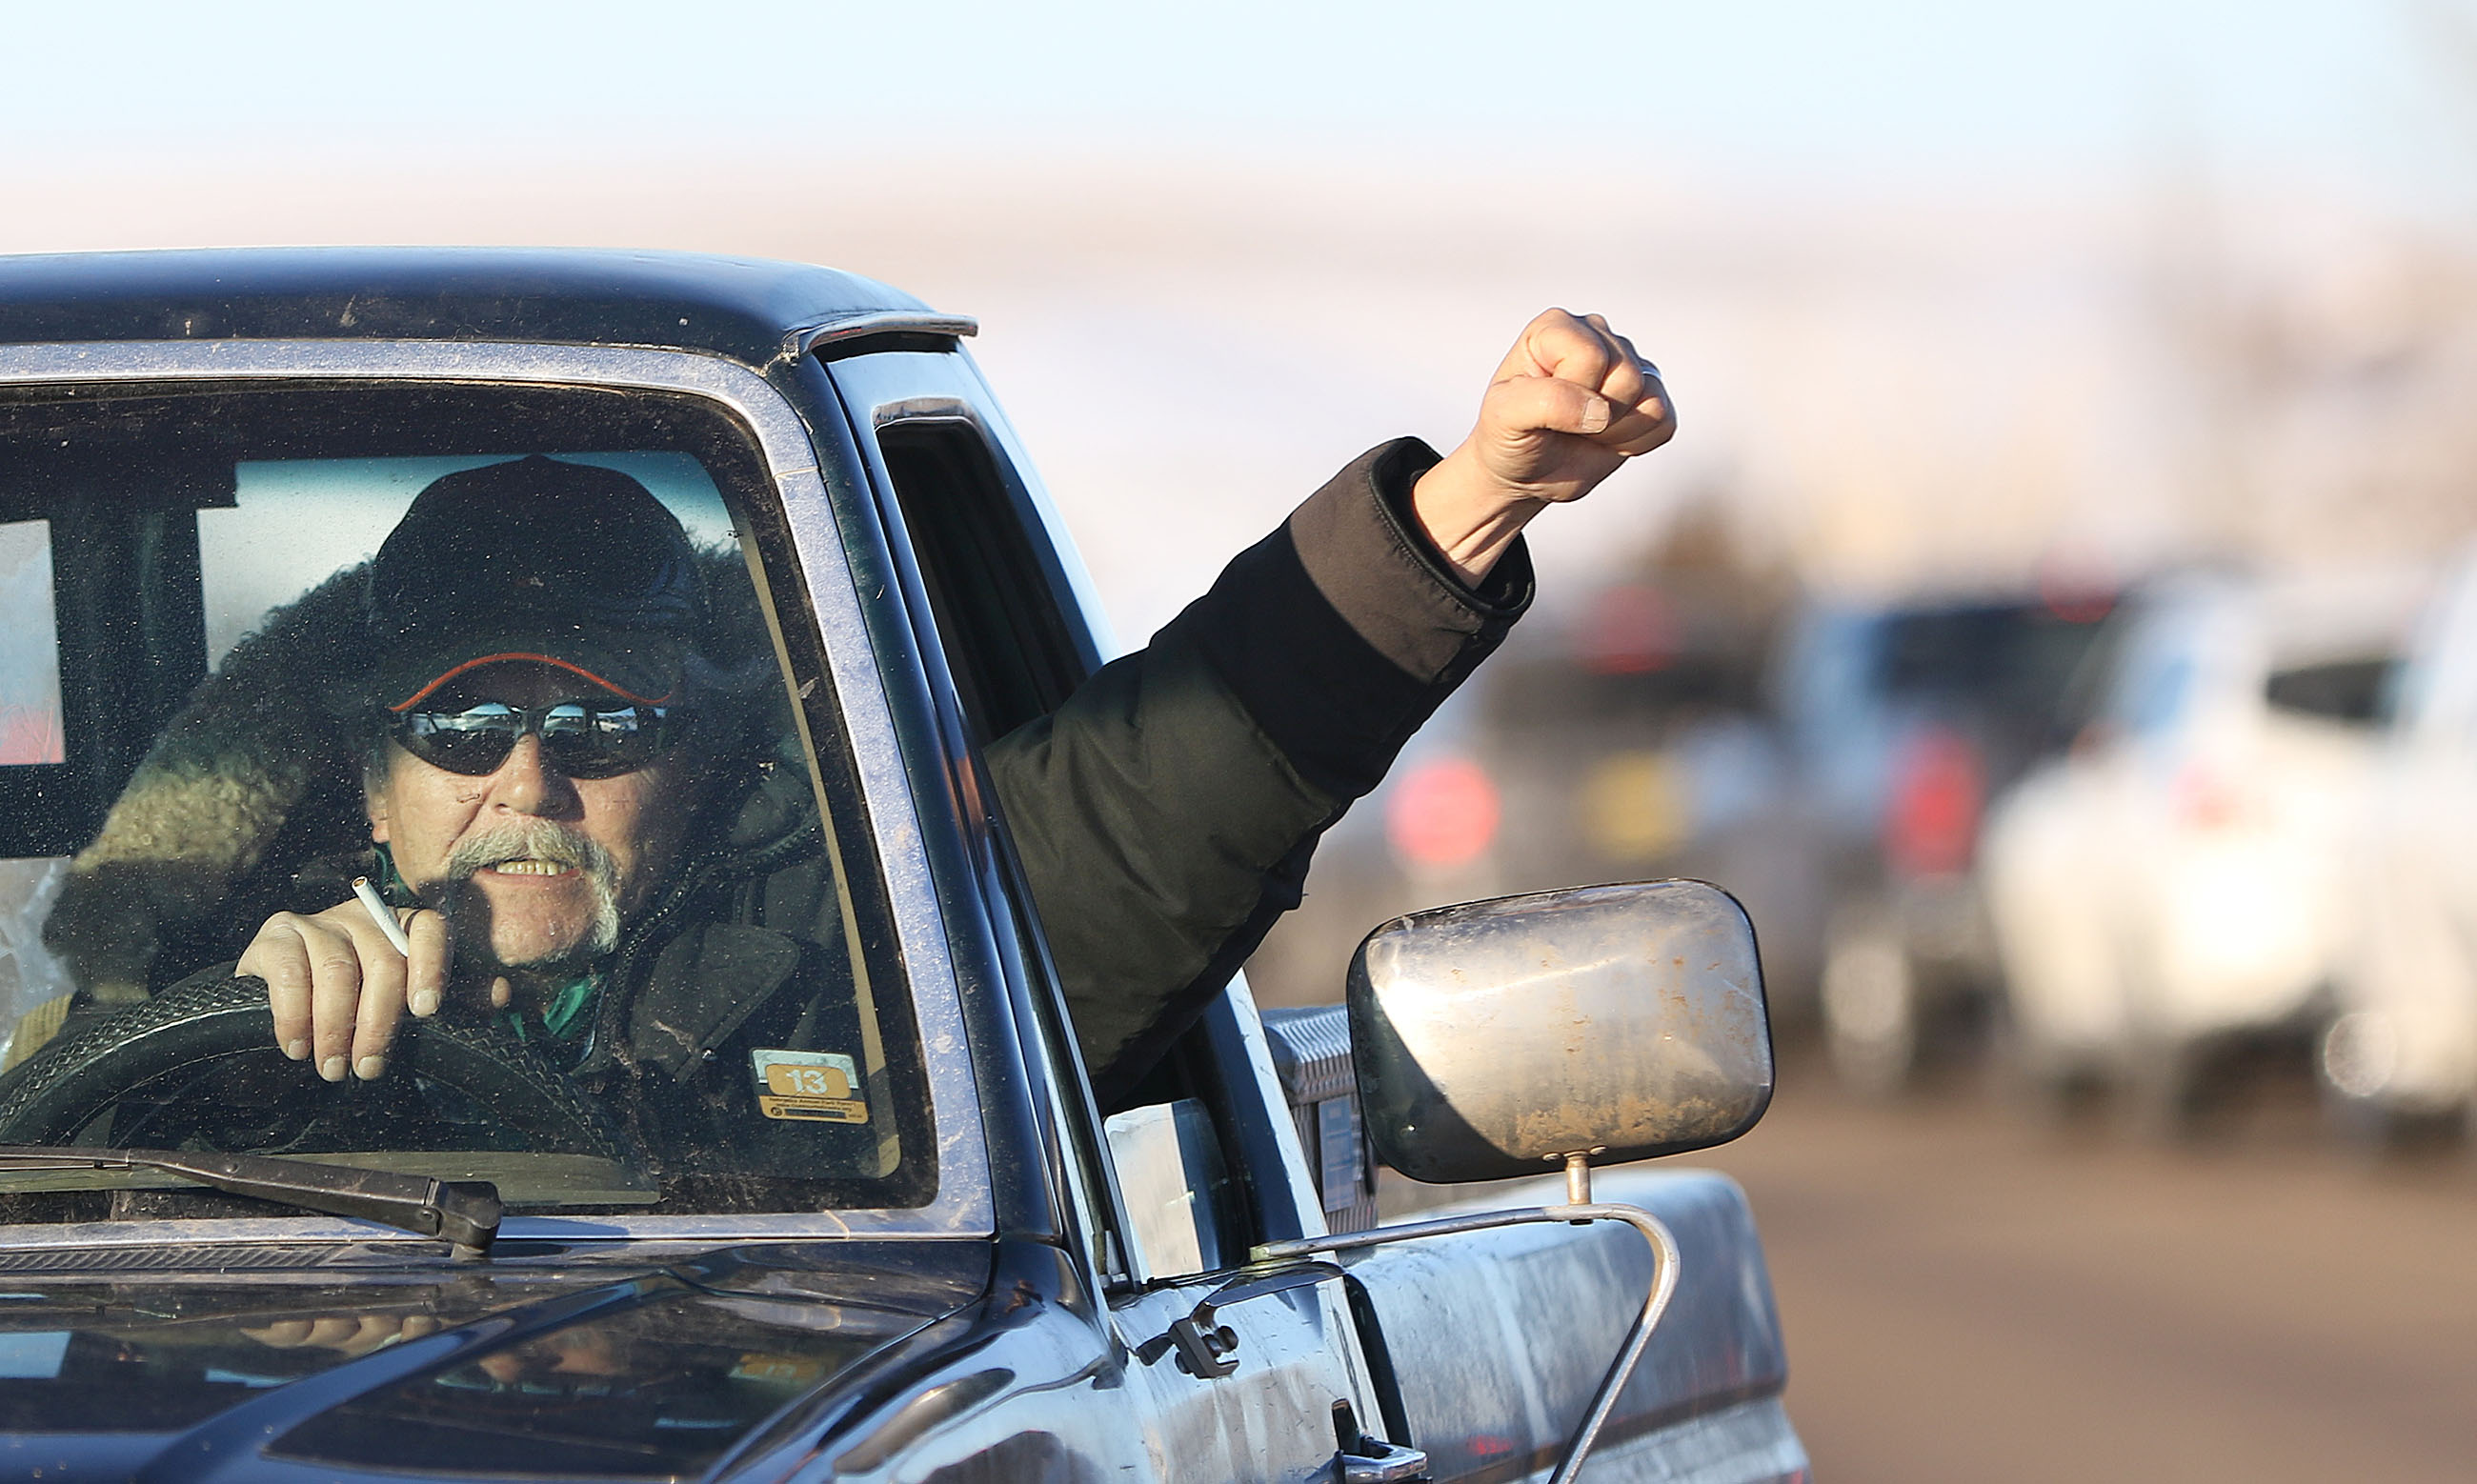 <p>The veterans hadn&#8217;t been on the scene at Standing Rock for long when the U.S. Army Corps of Engineers announced it was halting the pipeline project to study alternative routes that would take it farther from the reservation&#8217;s water supply. One protester celebrated with a raised fist.</p>